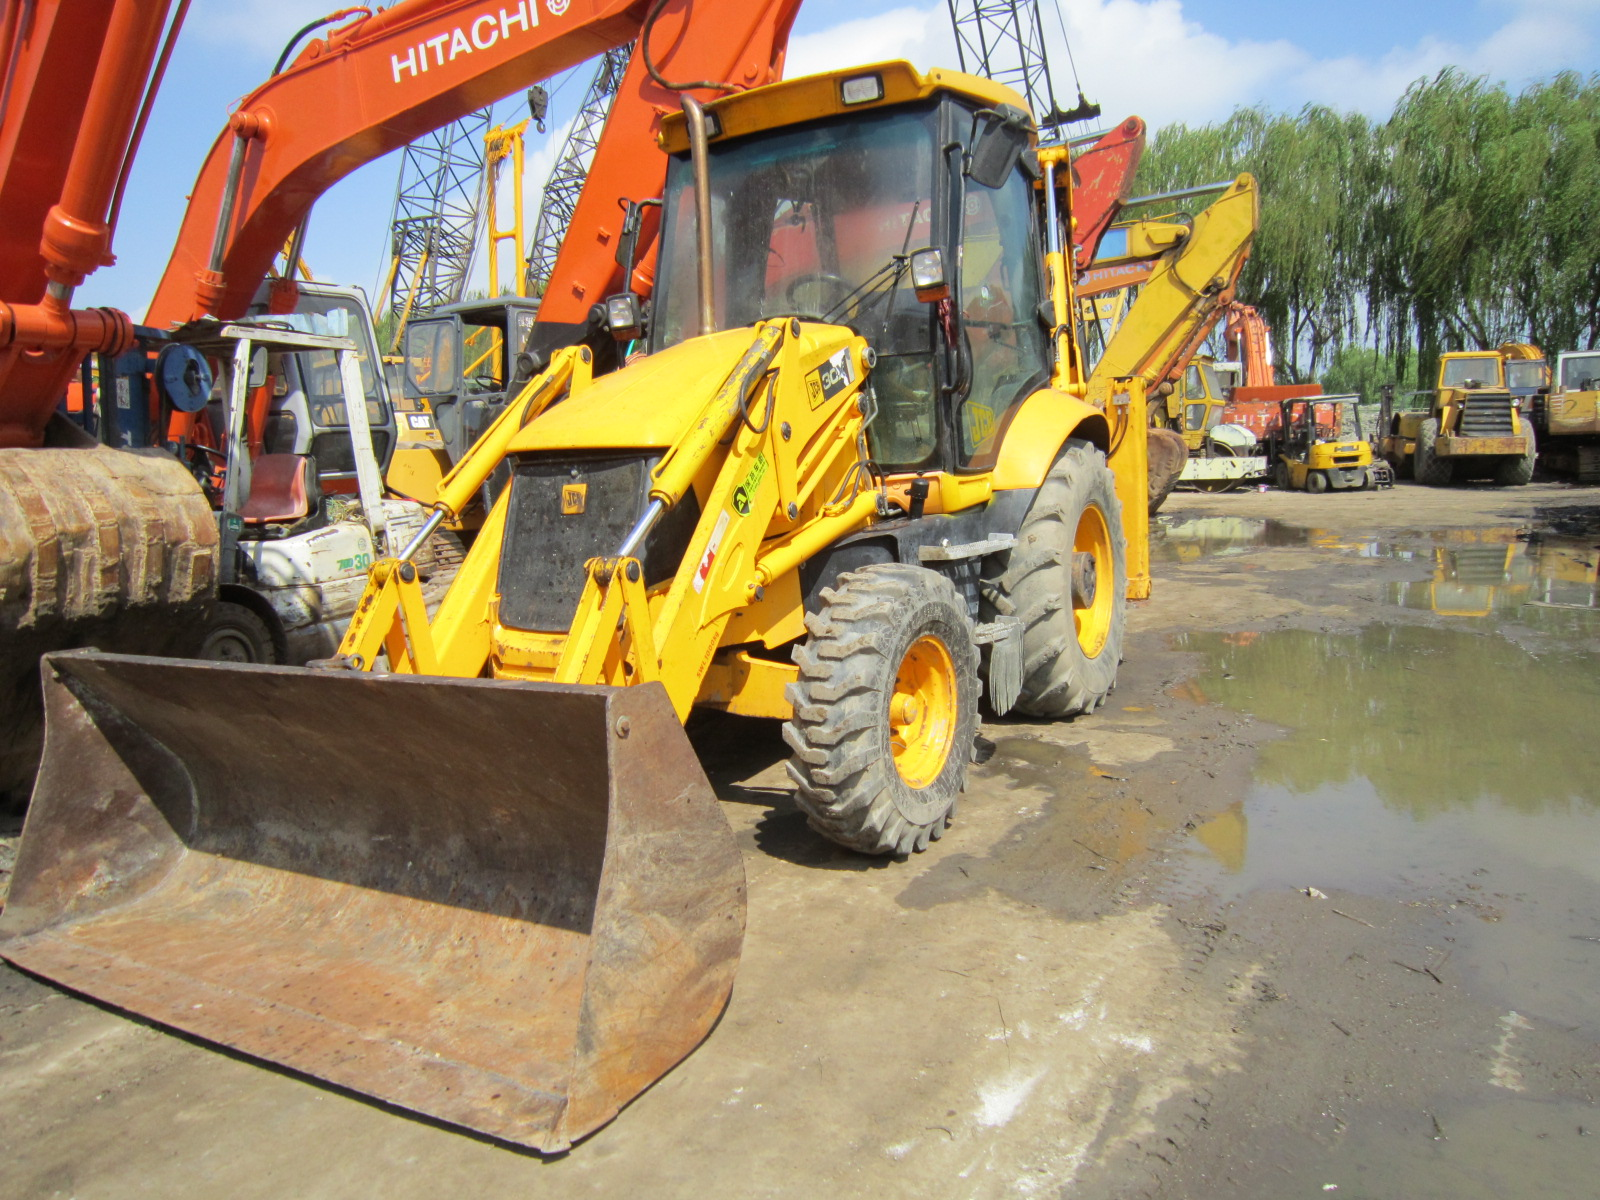 Lower Working Hours Used Original Jcb 3cx 4cx Backhoe Loader for Sale with Good Condition